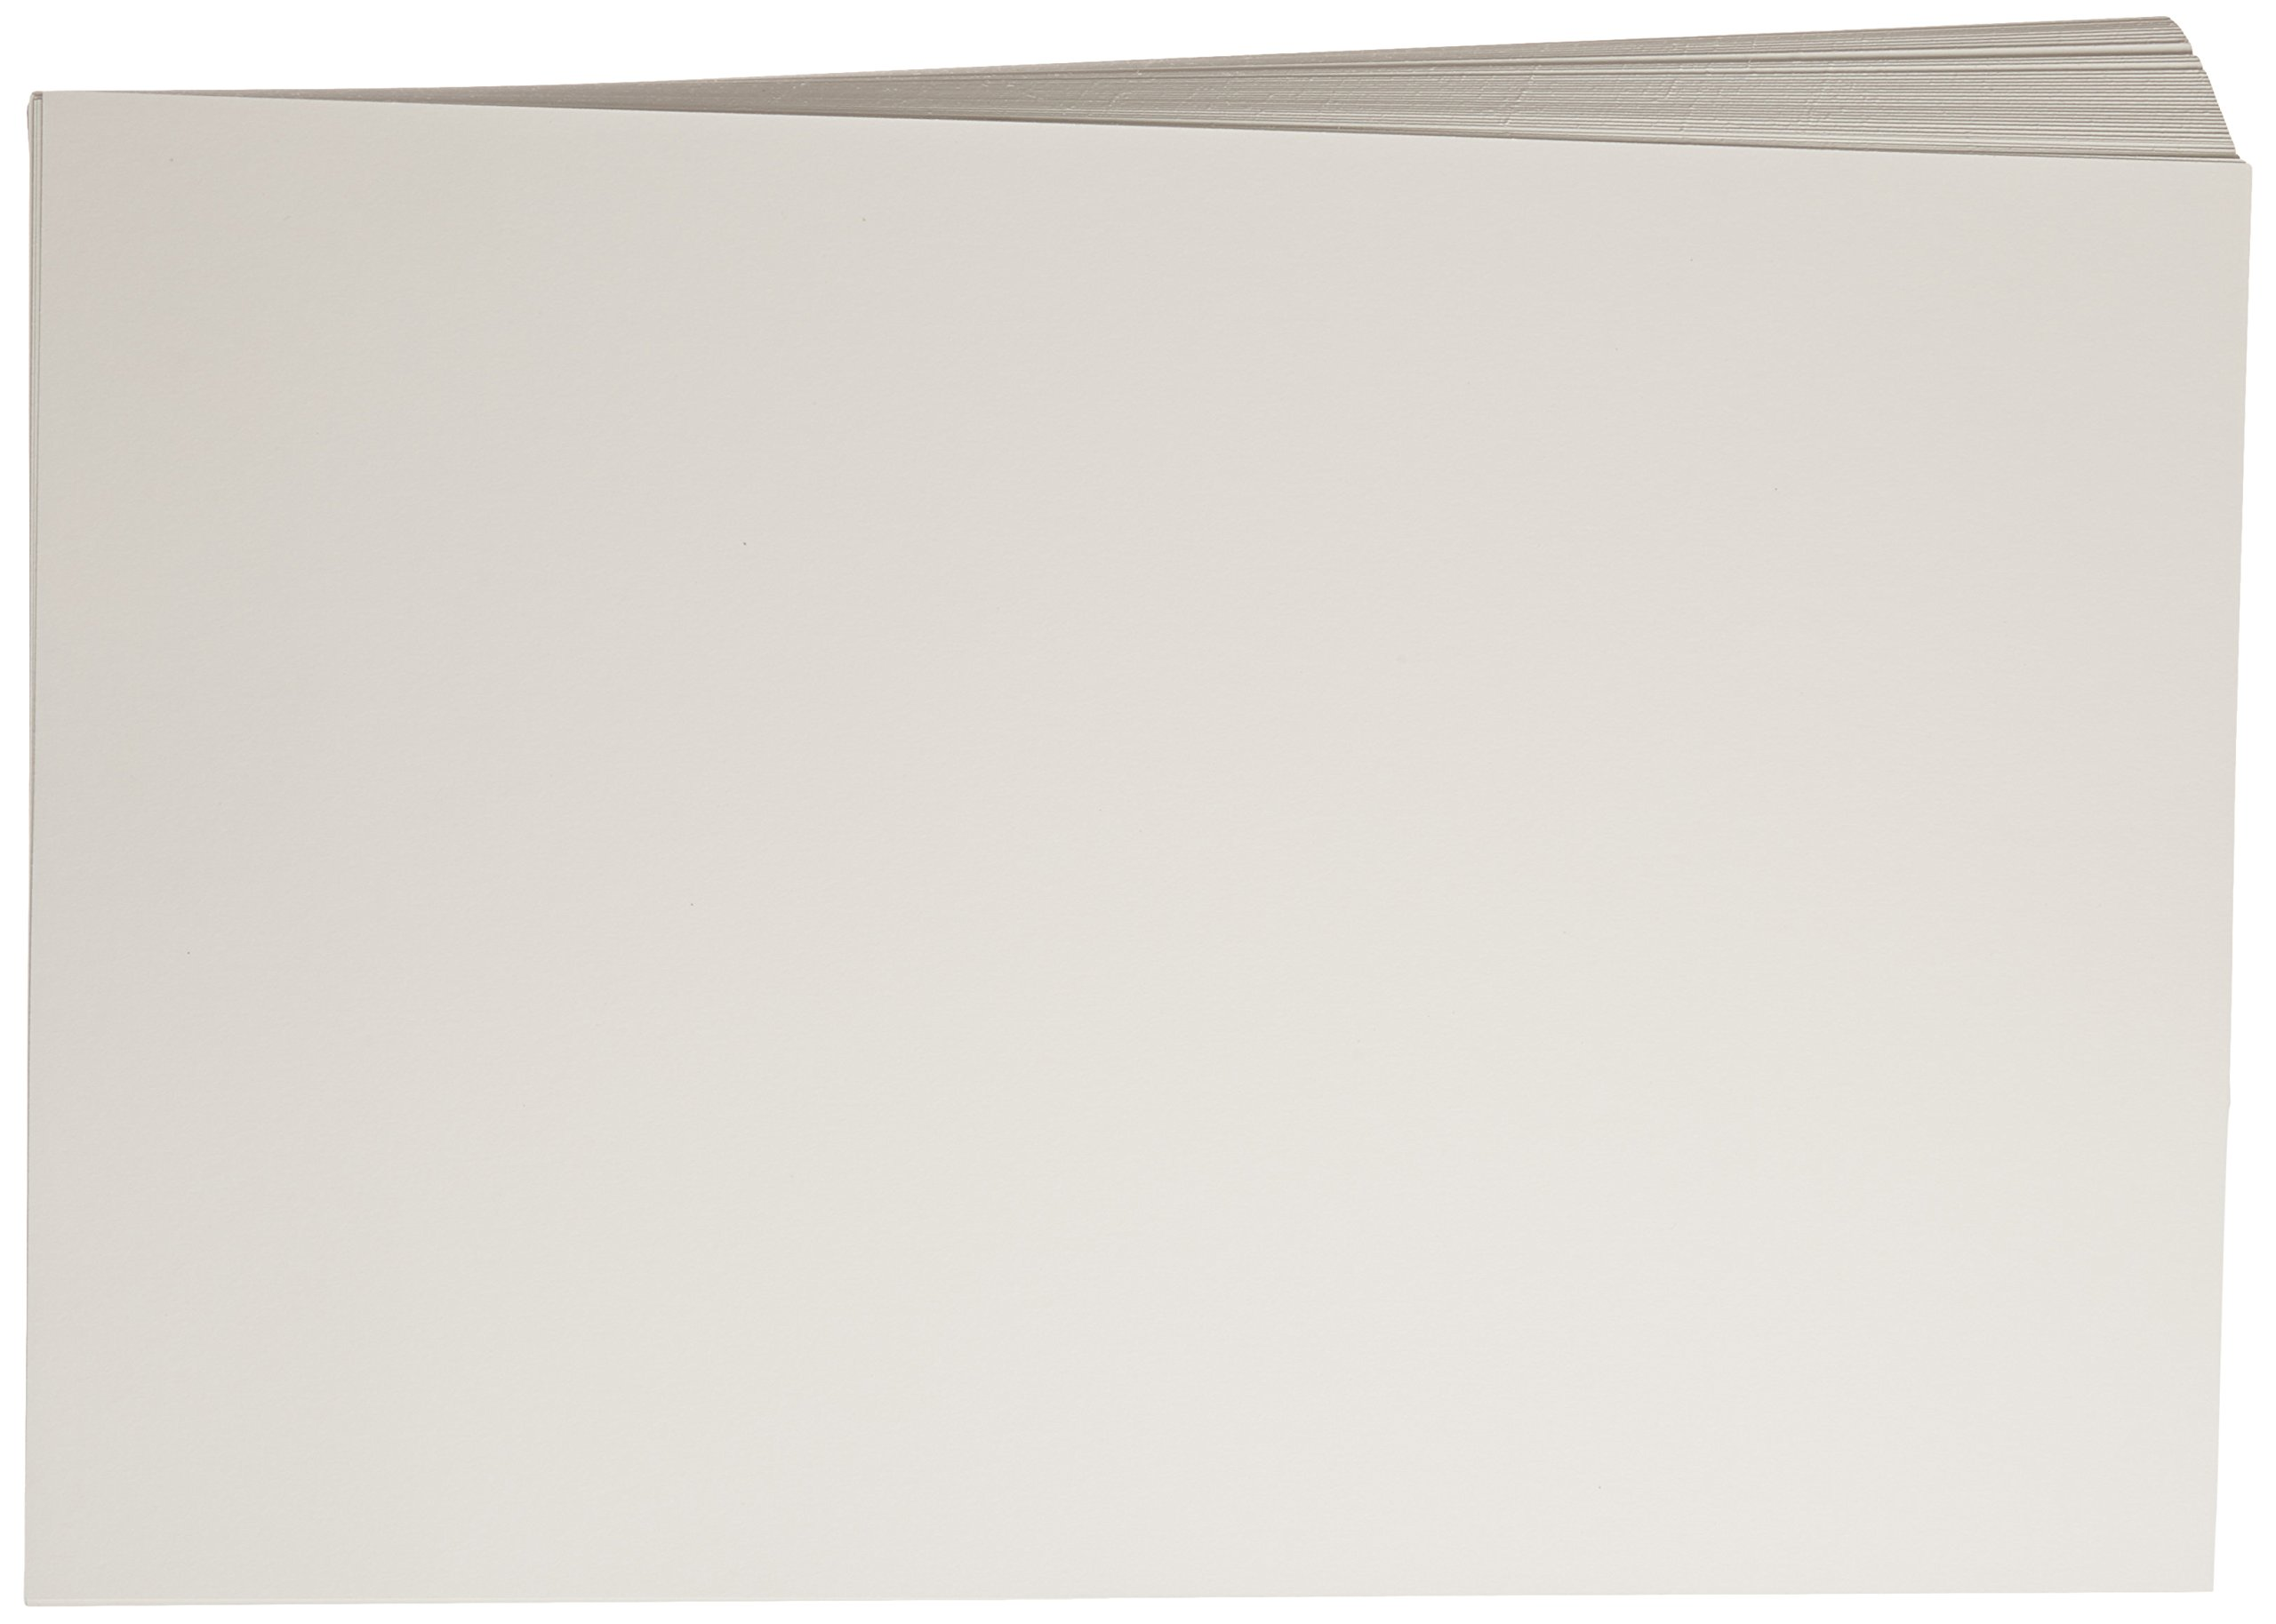 Sax Watercolor Beginner Paper, 90 lbs, 12 x 18 Inches, Natural White, Pack of 100